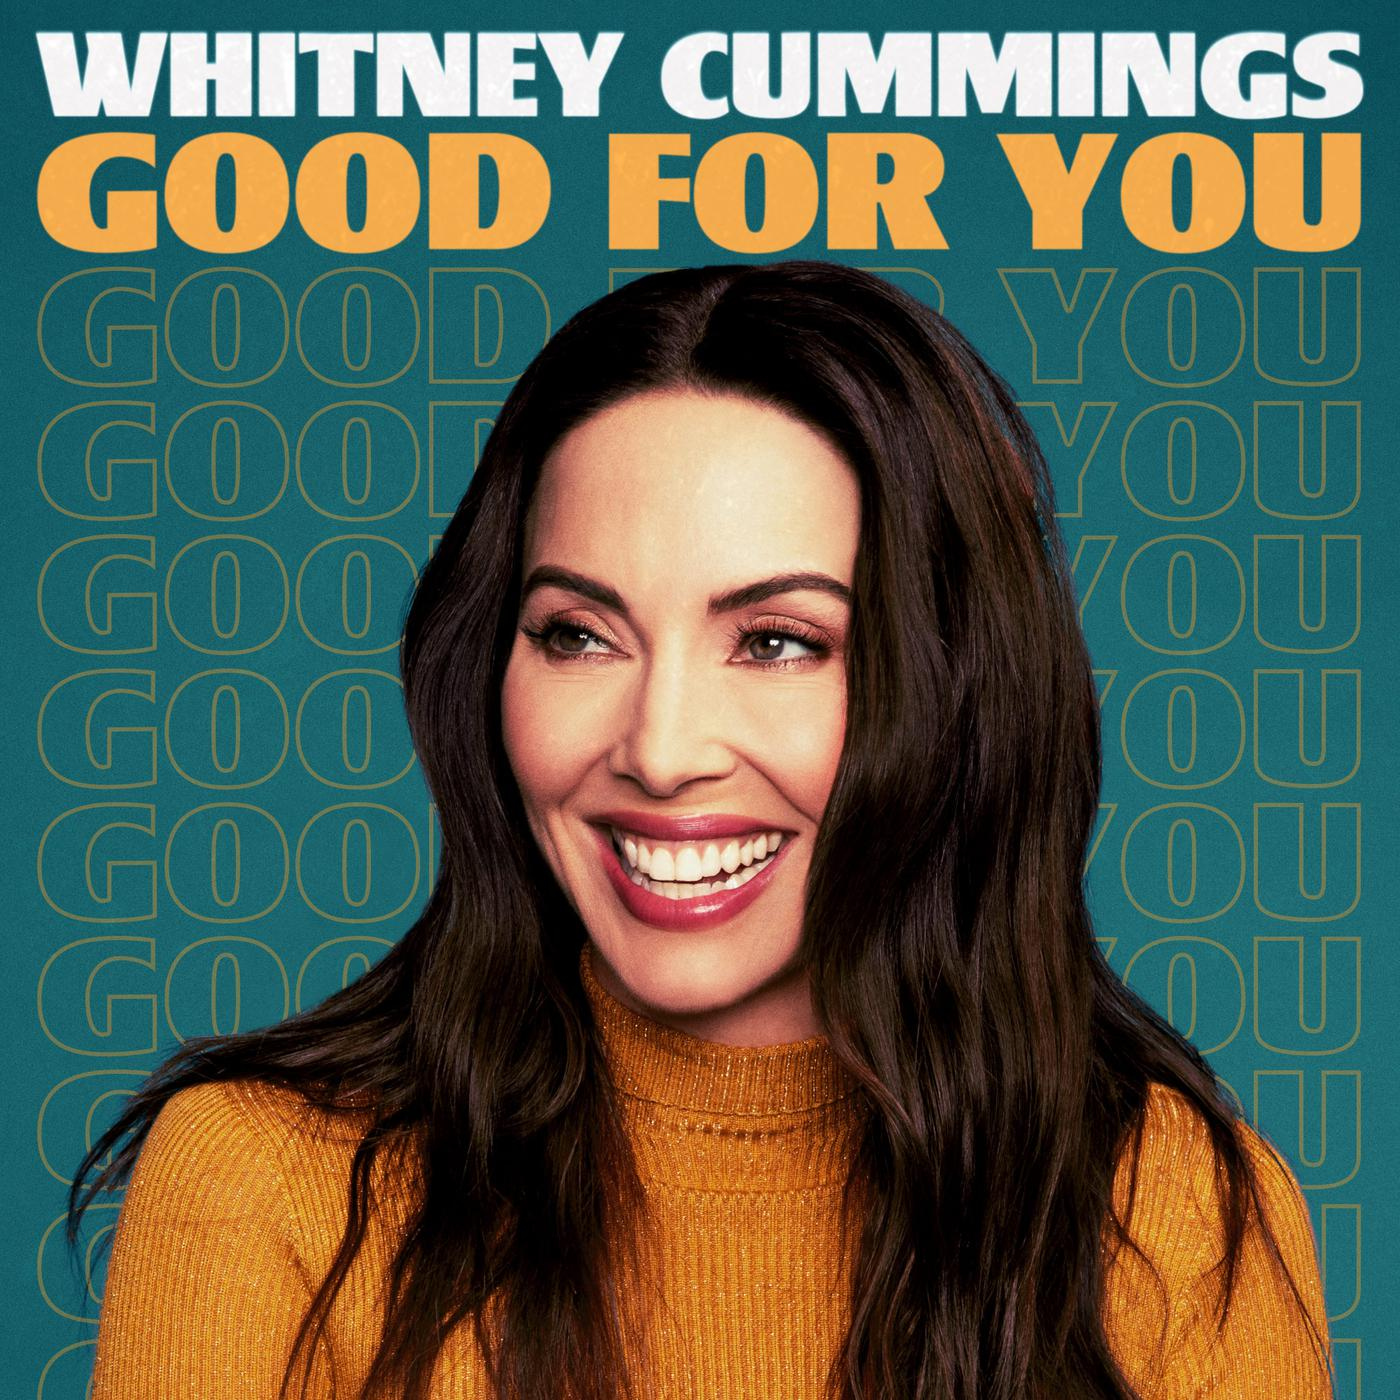 Image result for good for you whitney cummings cover art